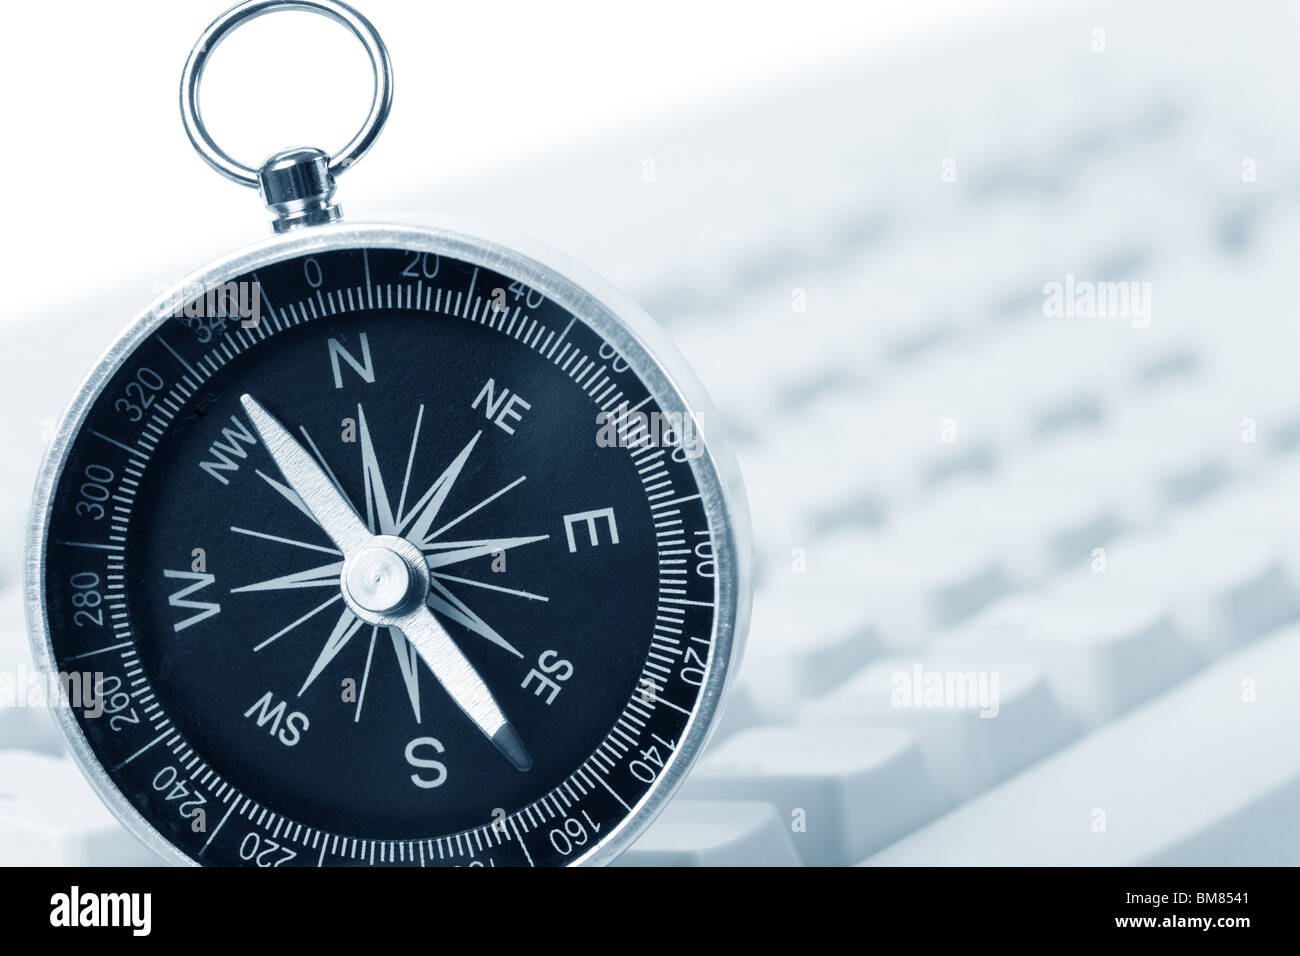 Computer Keyboard and Compass, internet concept - Stock Image